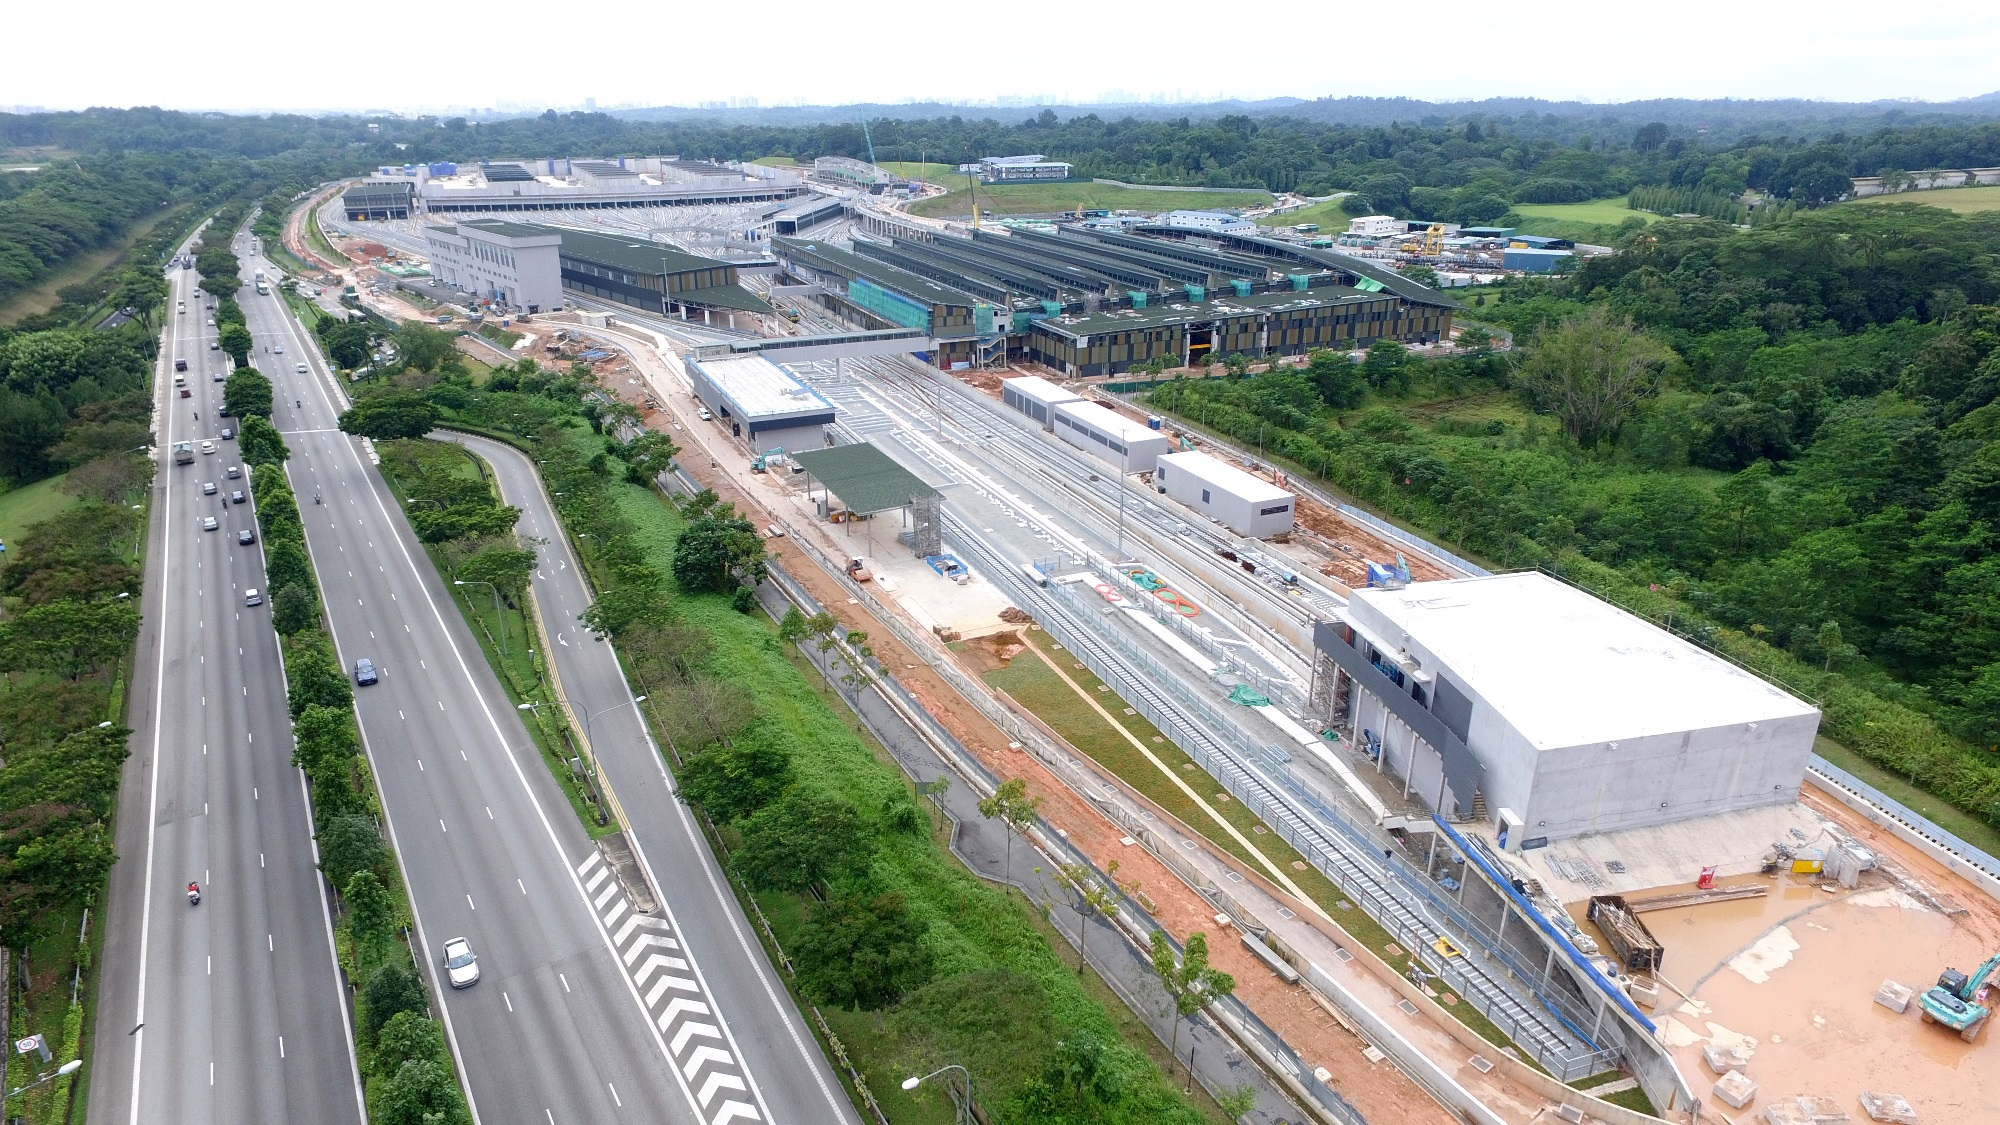 Overhead view of Mandai Depot (Credits: TSL Construction Blog)